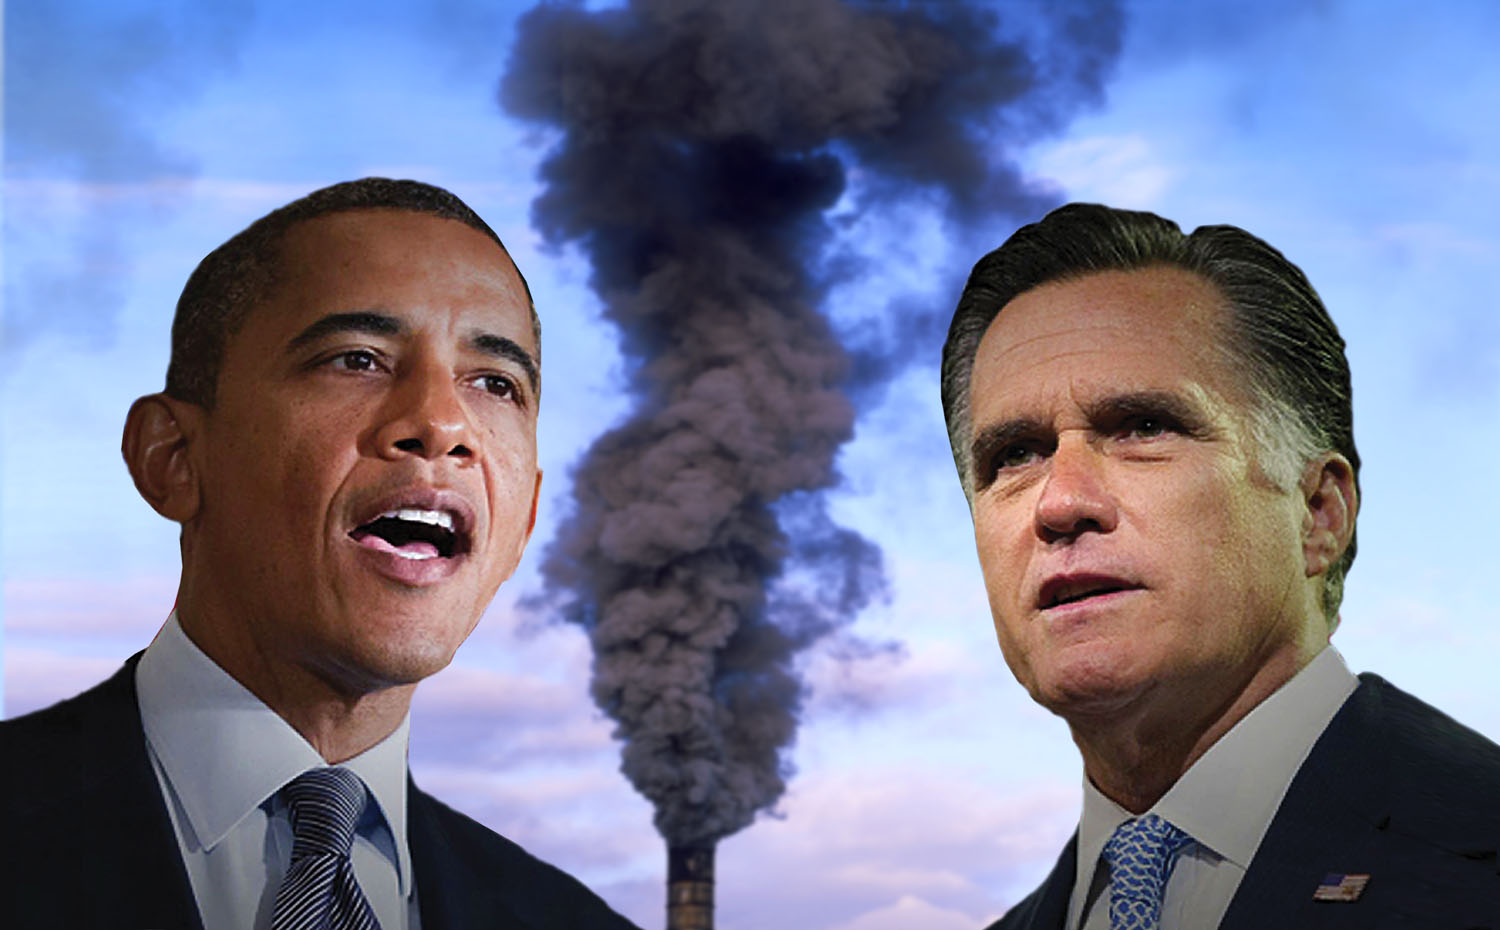 Barack Obama and Mitt Romney deceived America in their faked energy stimulus opposition